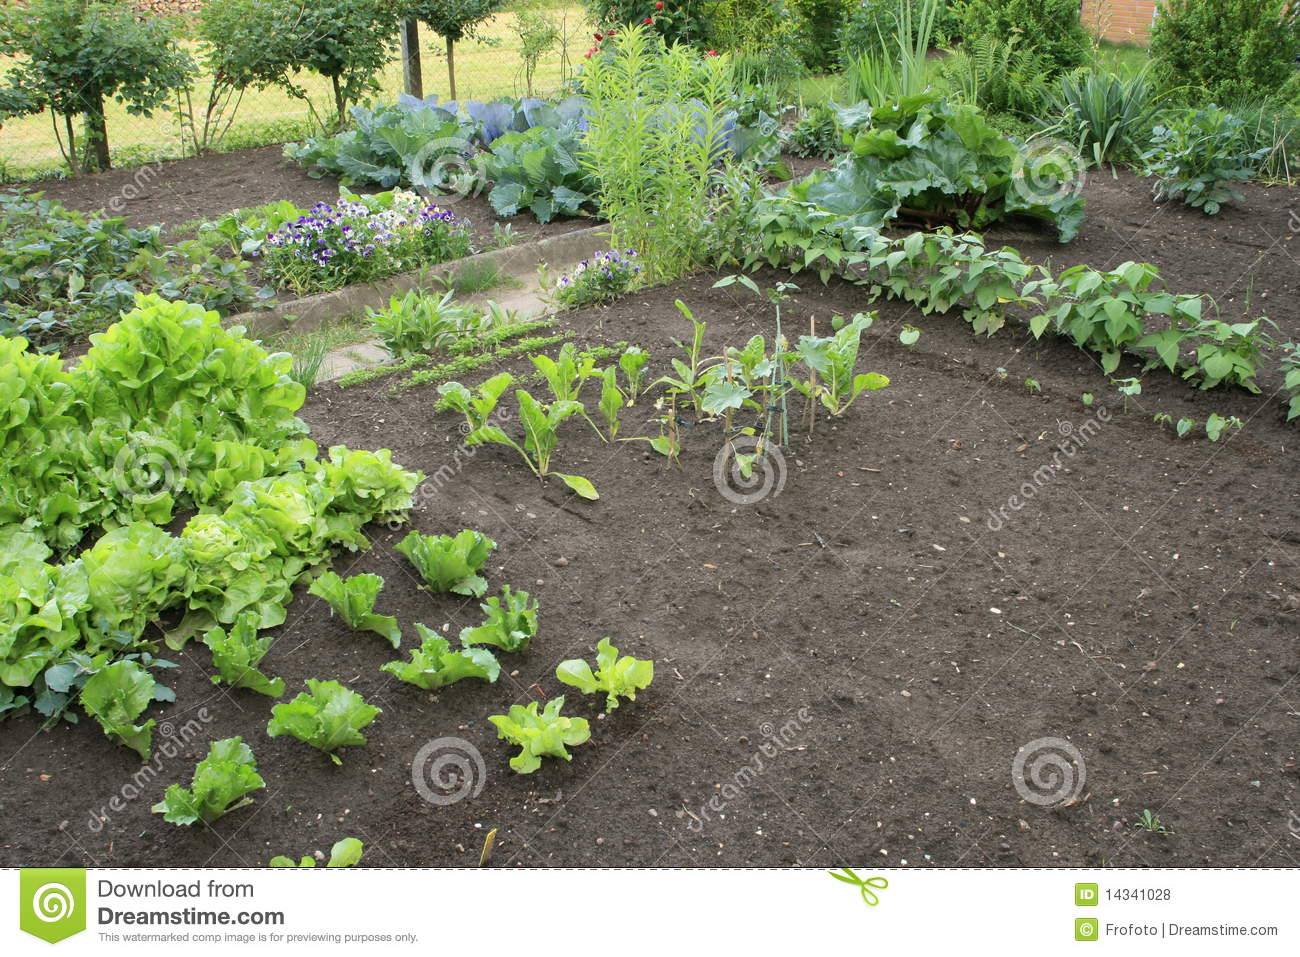 Vegetable patch royalty free stock photos image 14341028 for Vegetable patch